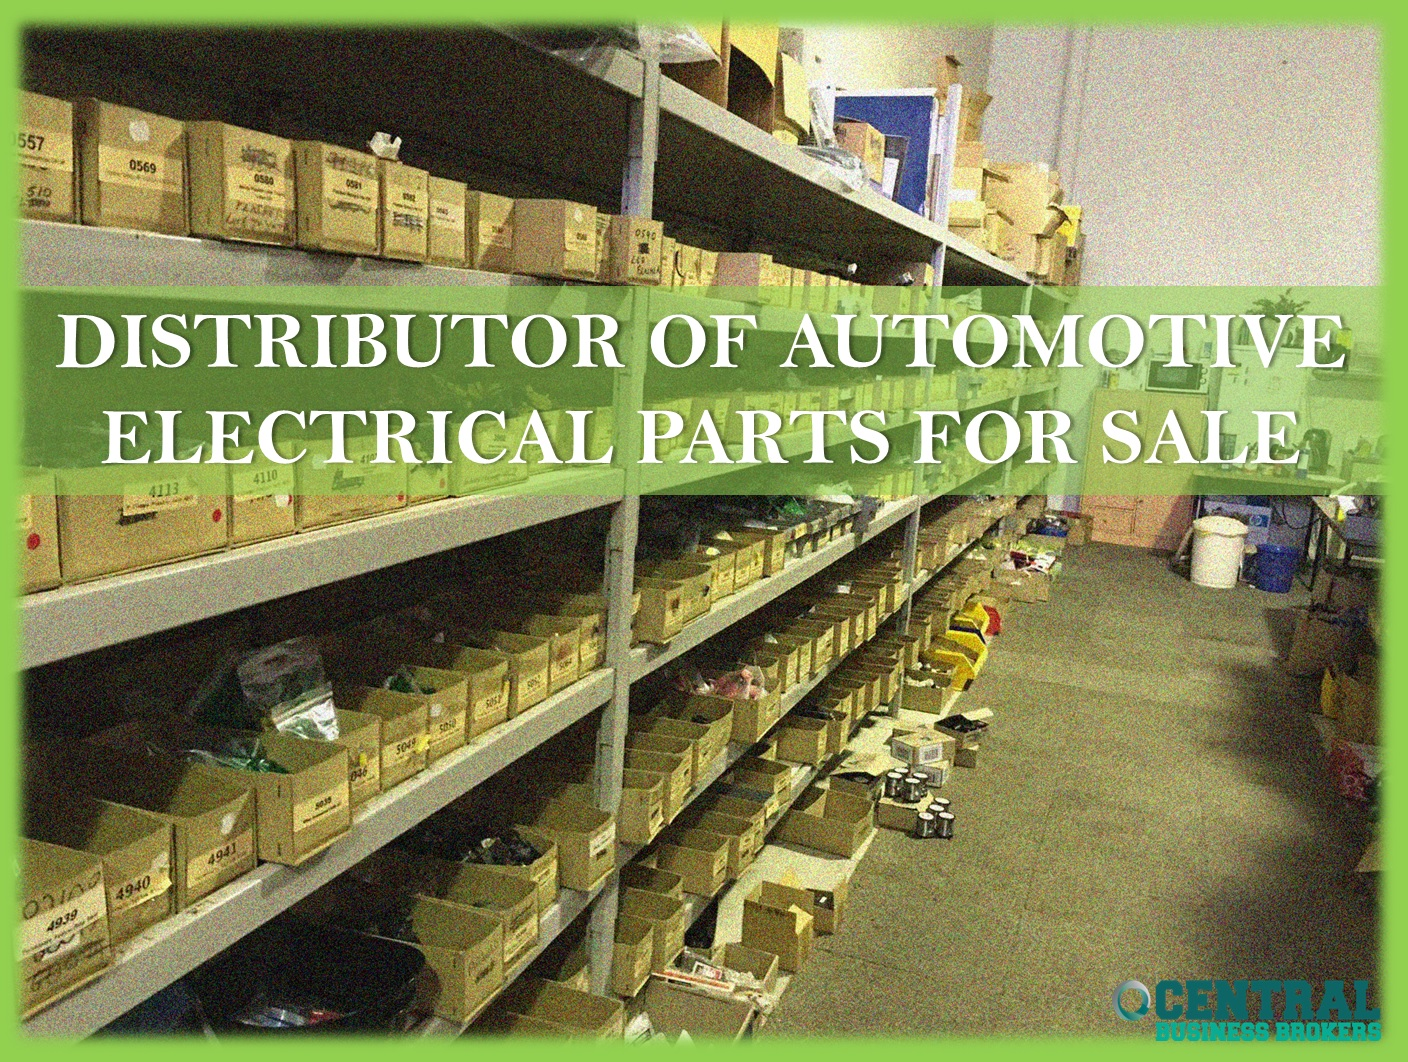 DISTRIBUTOR OF ELECTRICAL SPARE PARTS FOR AUTOMOTIVE INDUSTRY